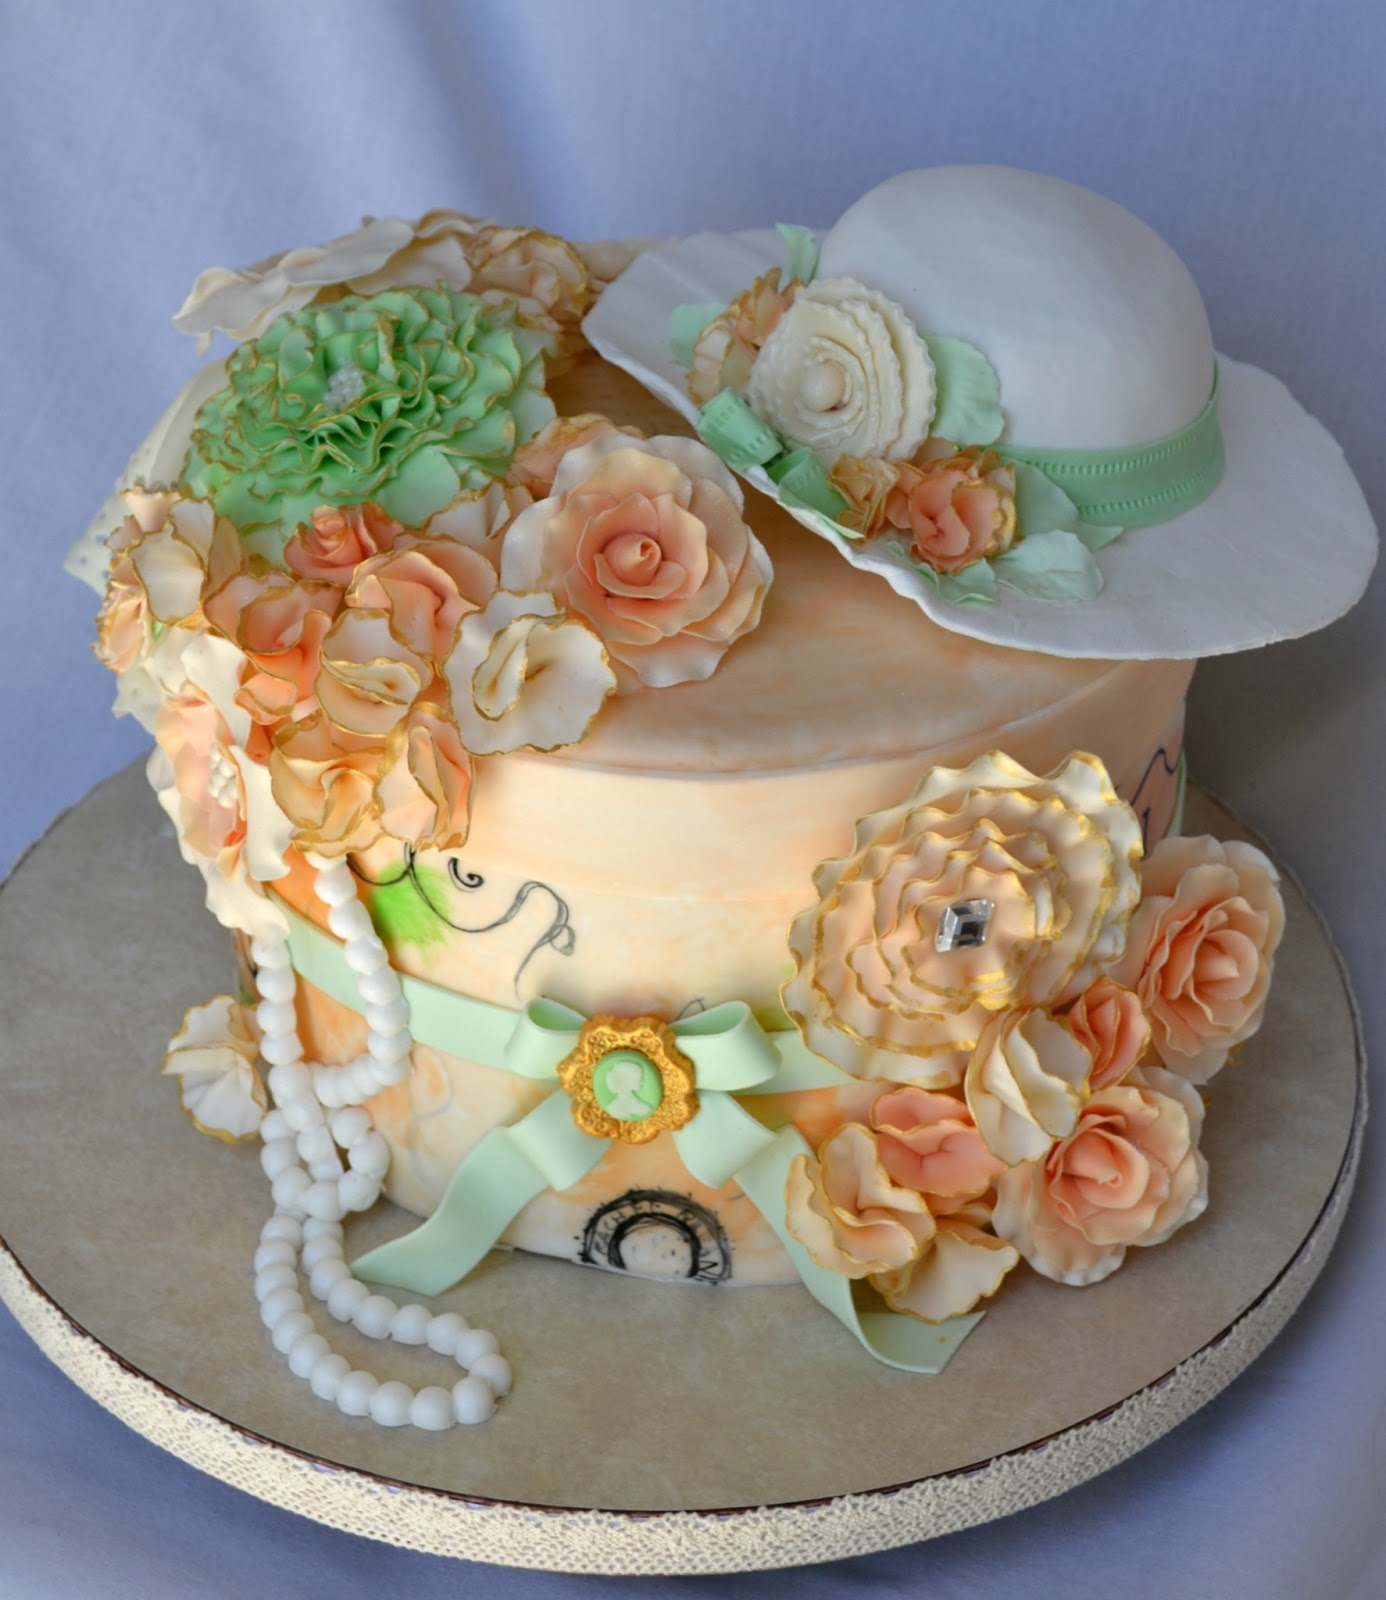 Delectable Cakes Anne of Green Gables Inspired Vintage Birthday Cake